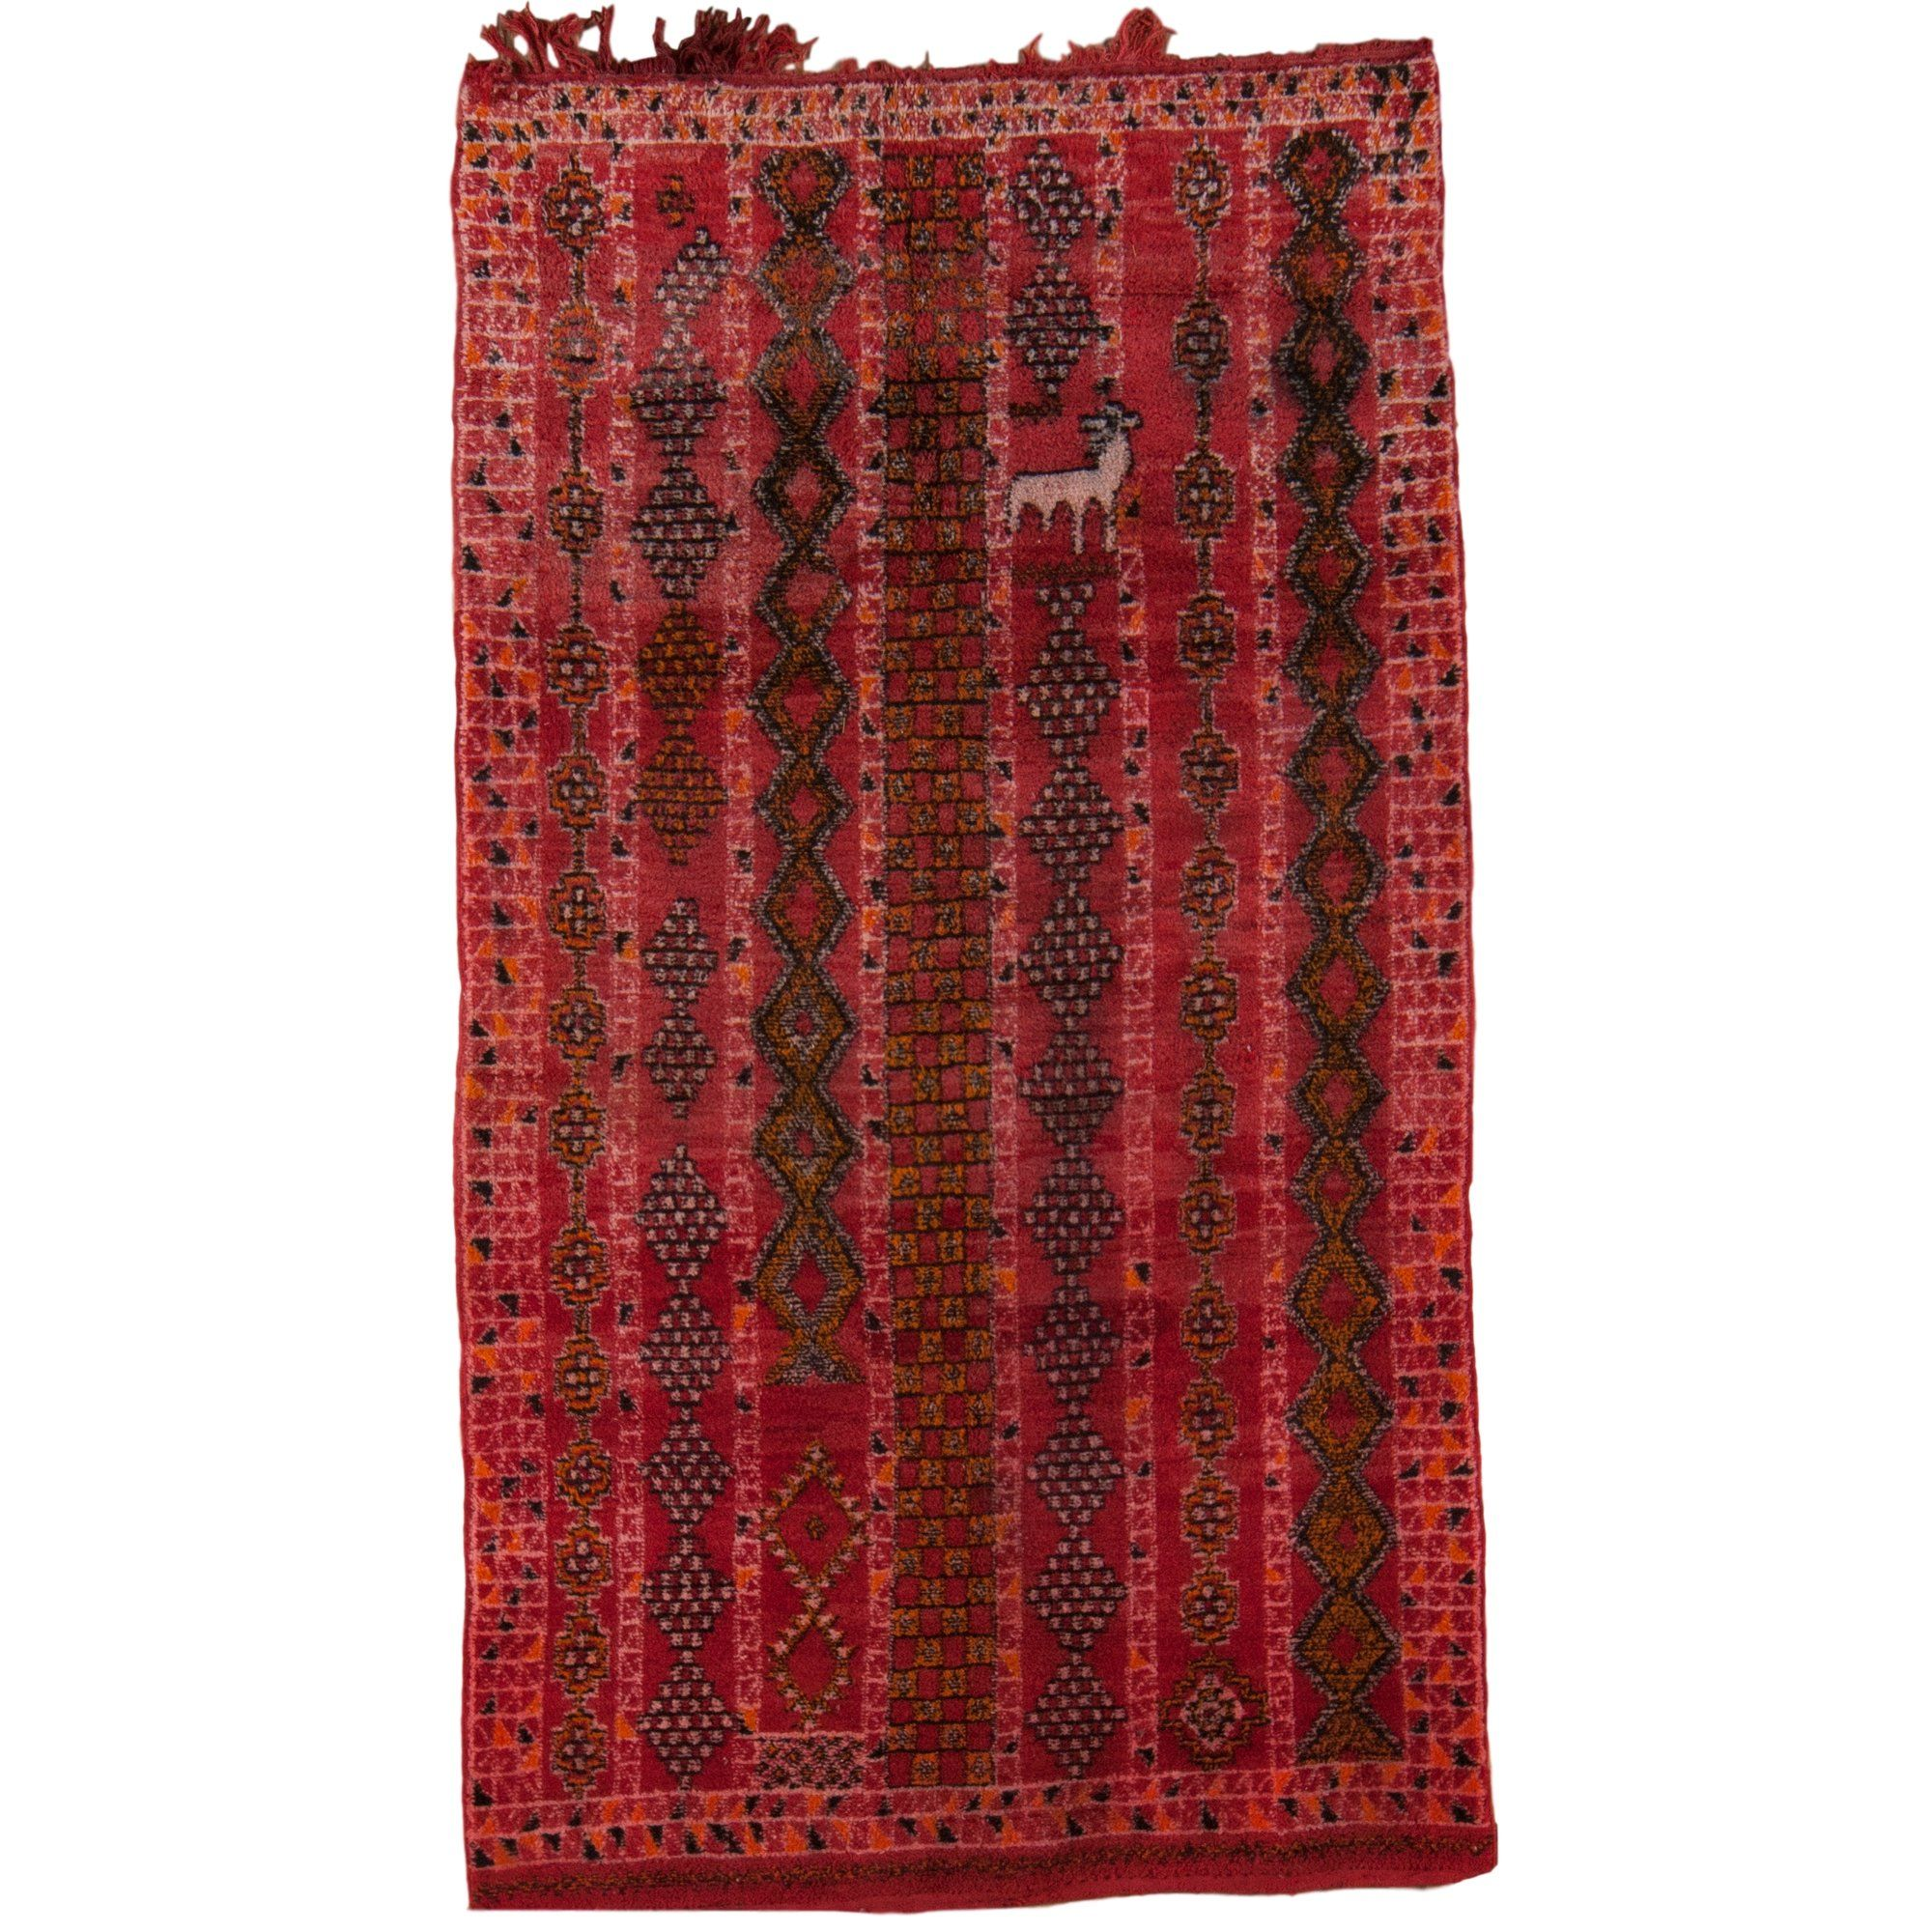 Hand Knotted Red Area Rug PIECES